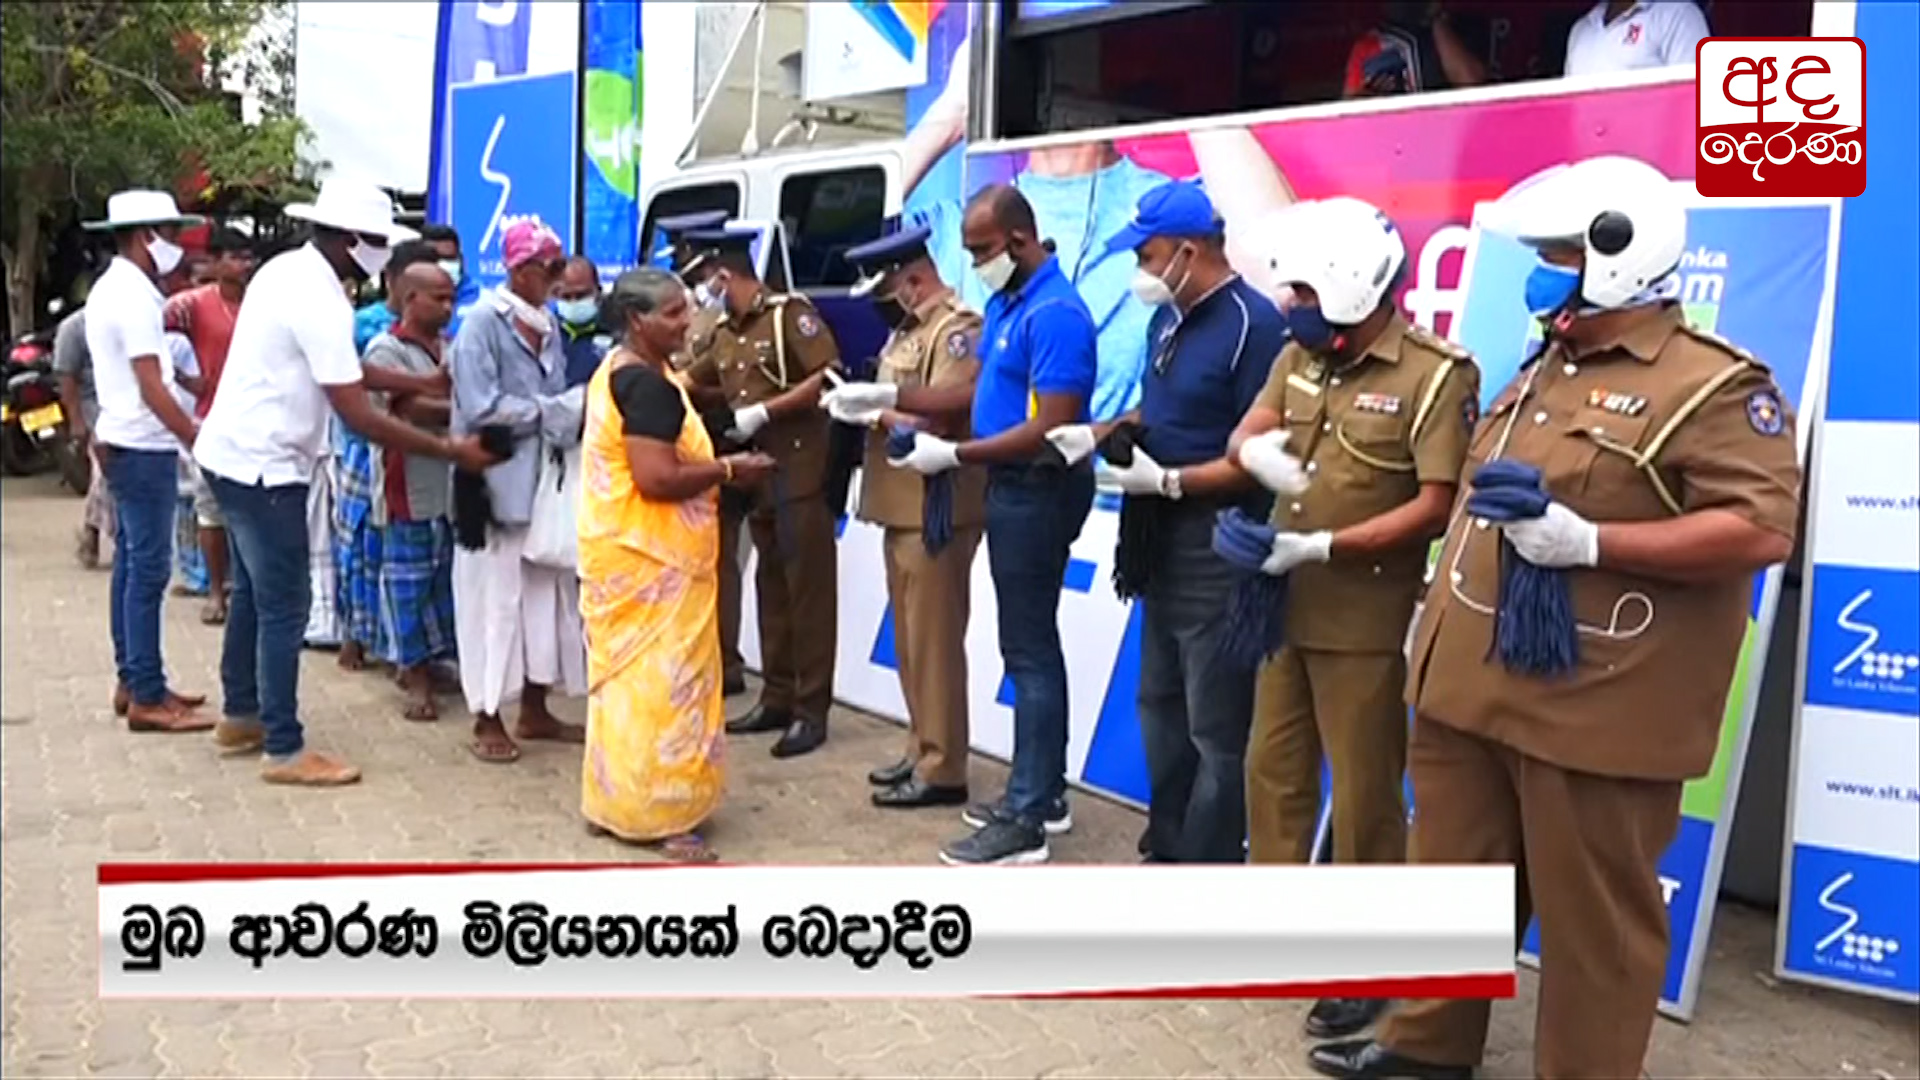 Manusath Derana distributes free face masks in Mullaitivu